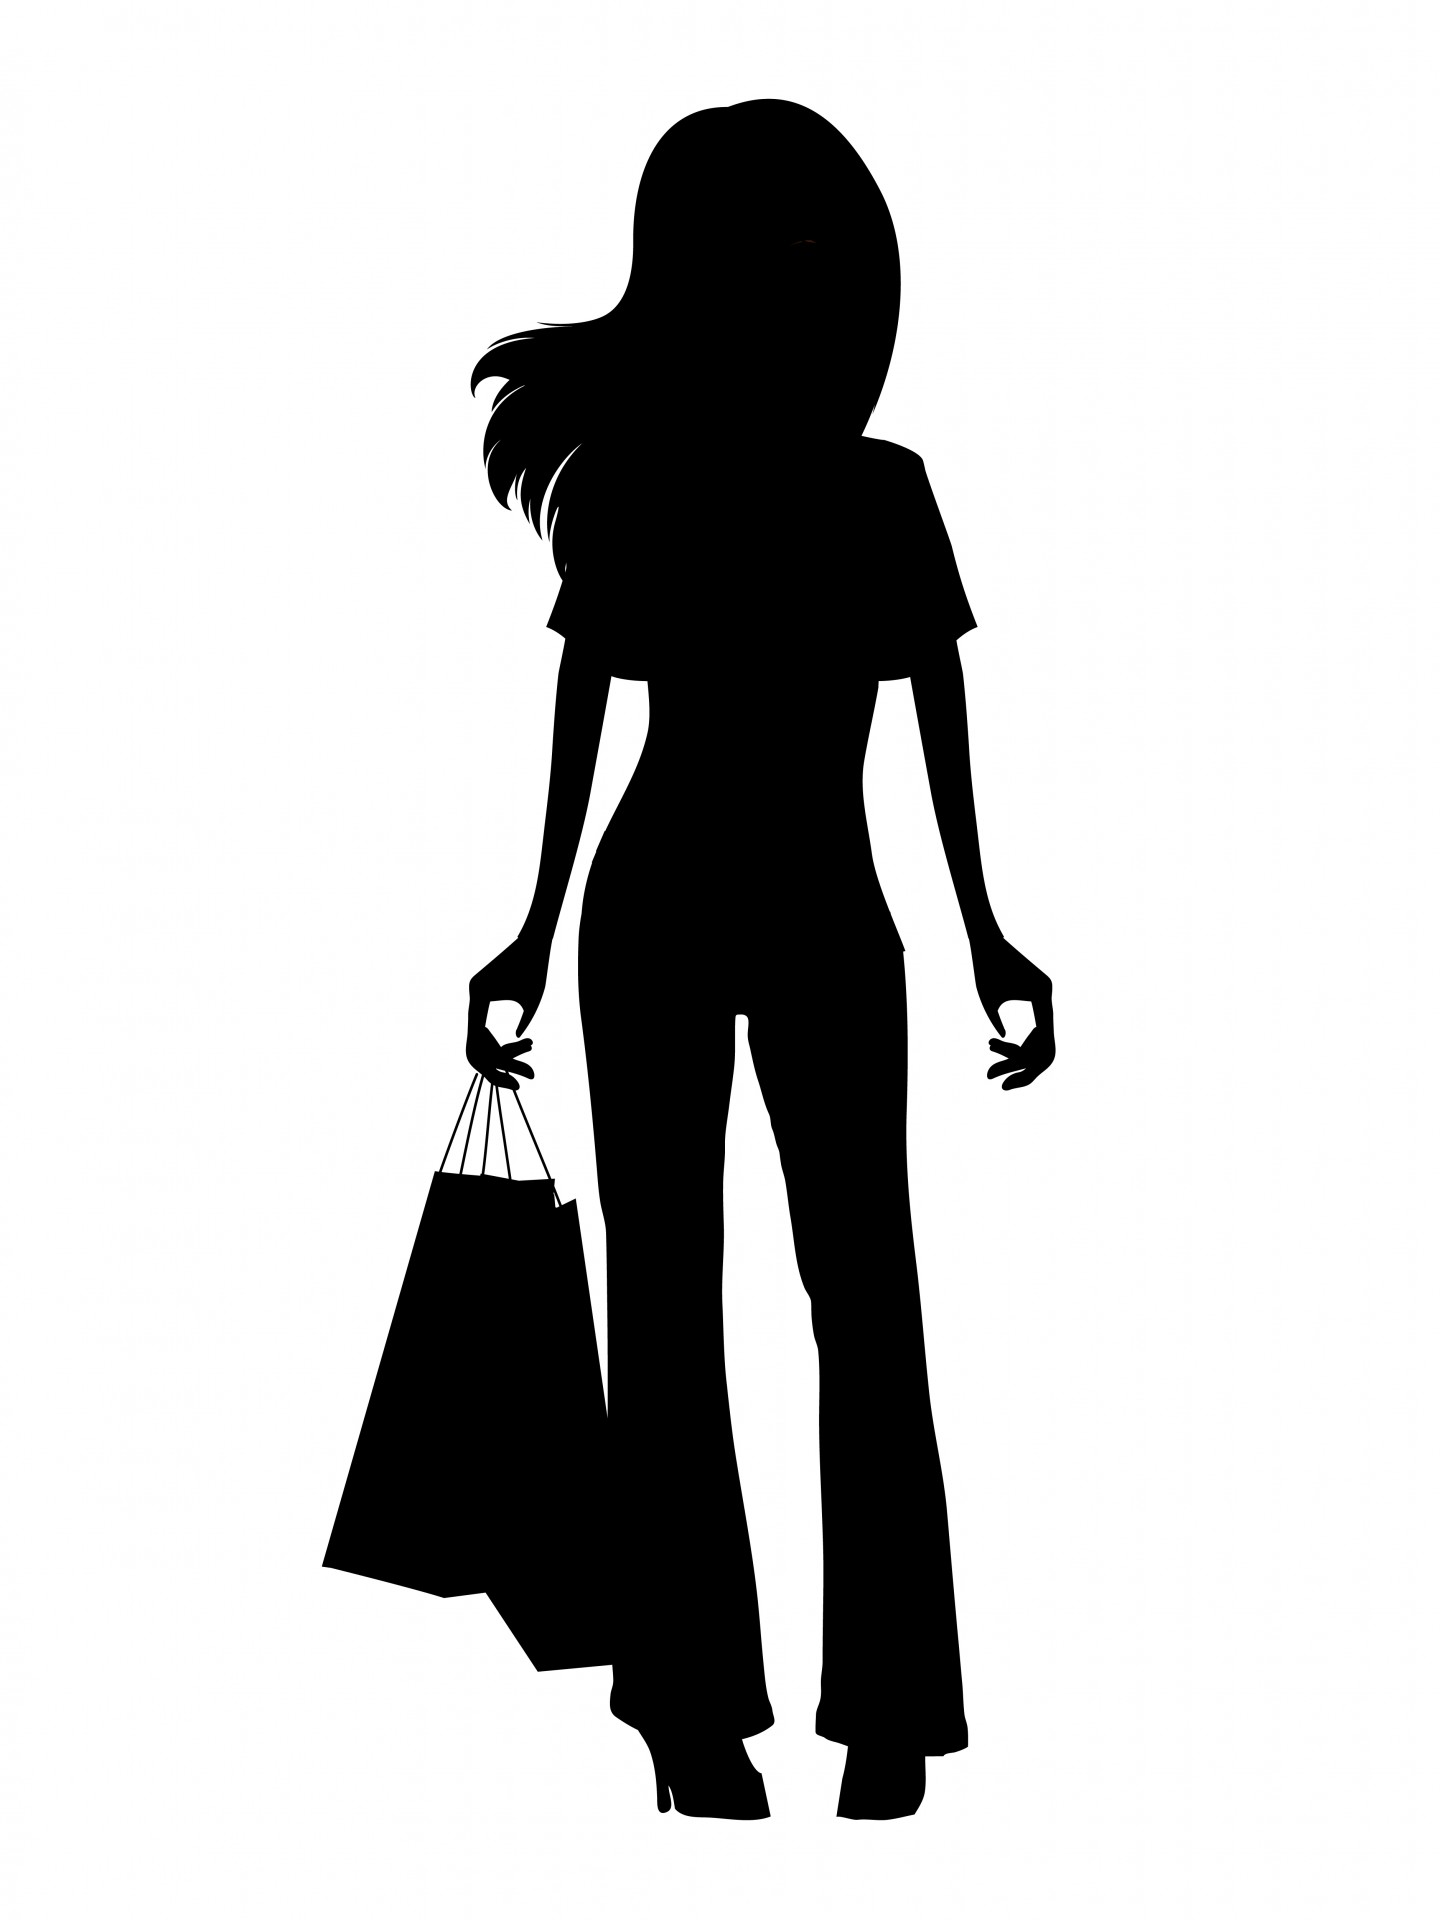 1440x1920 Girl Shopping Black Silhouette Free Stock Photo